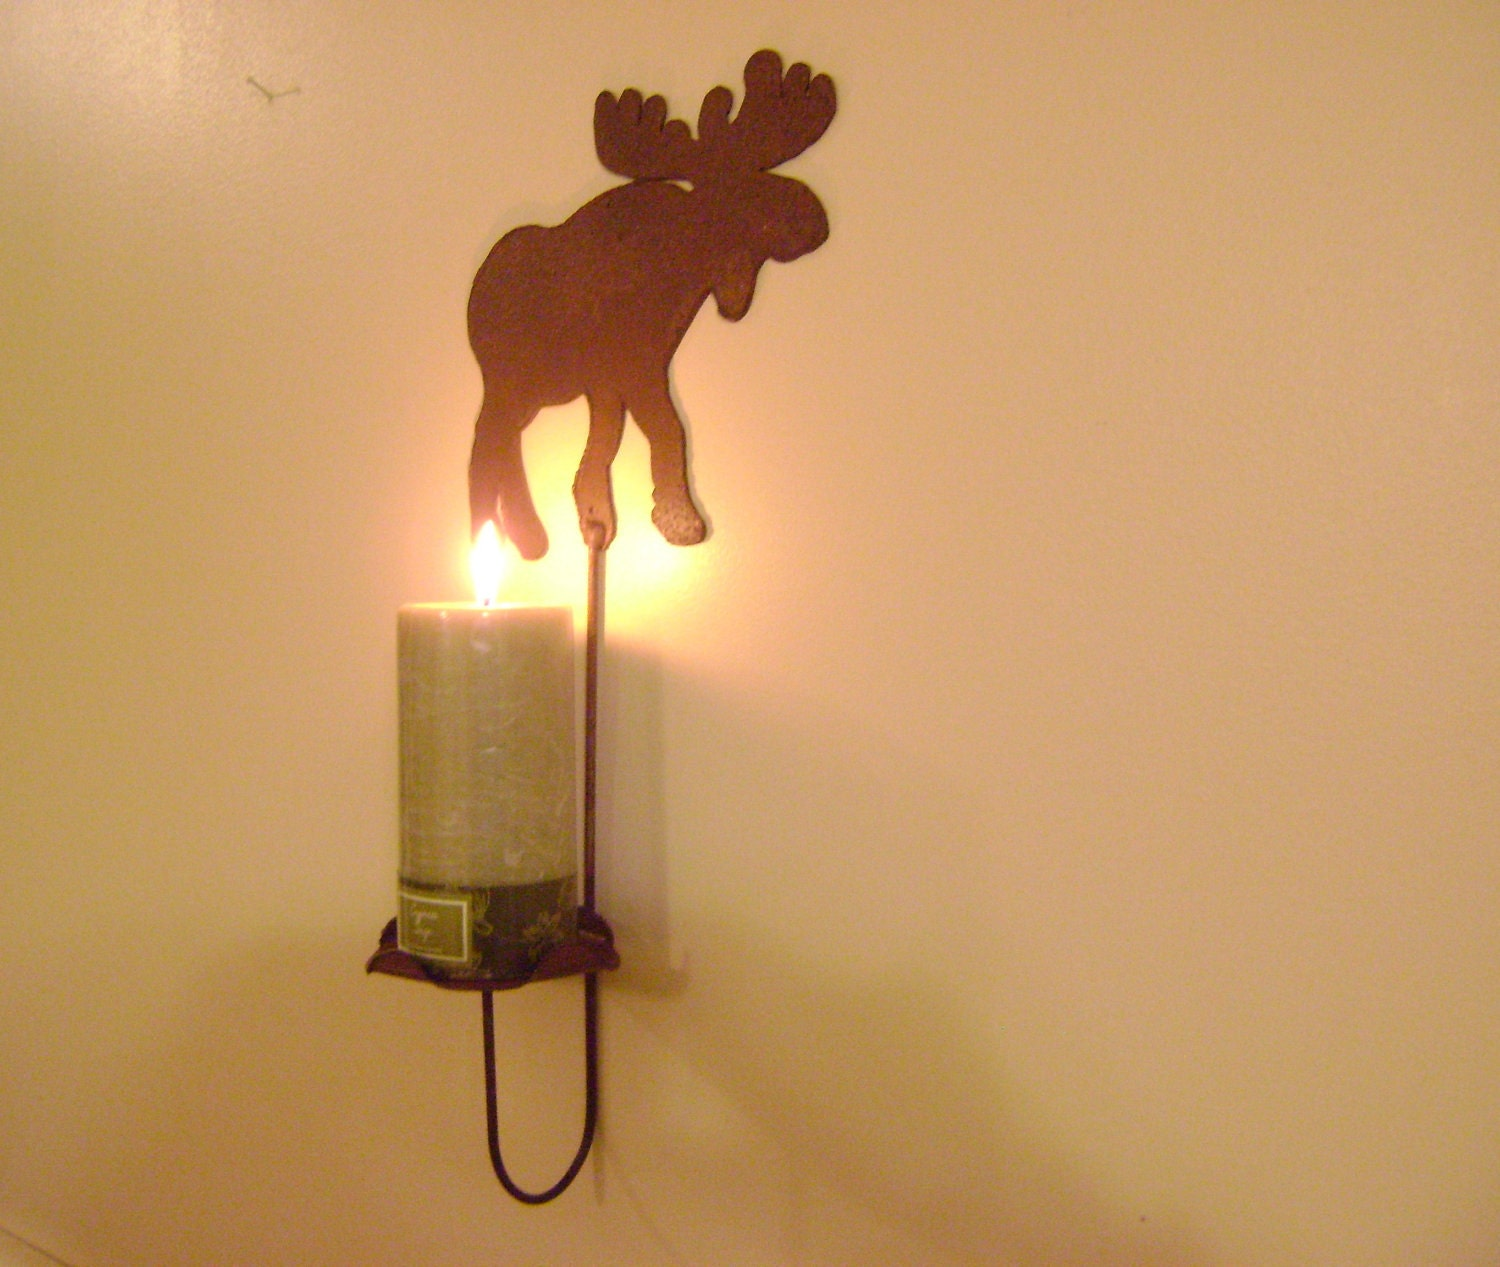 Tin Wall Sconce Candle Holder : Primitive Metal Moose Wall Sconce Candle by northwindmetalart